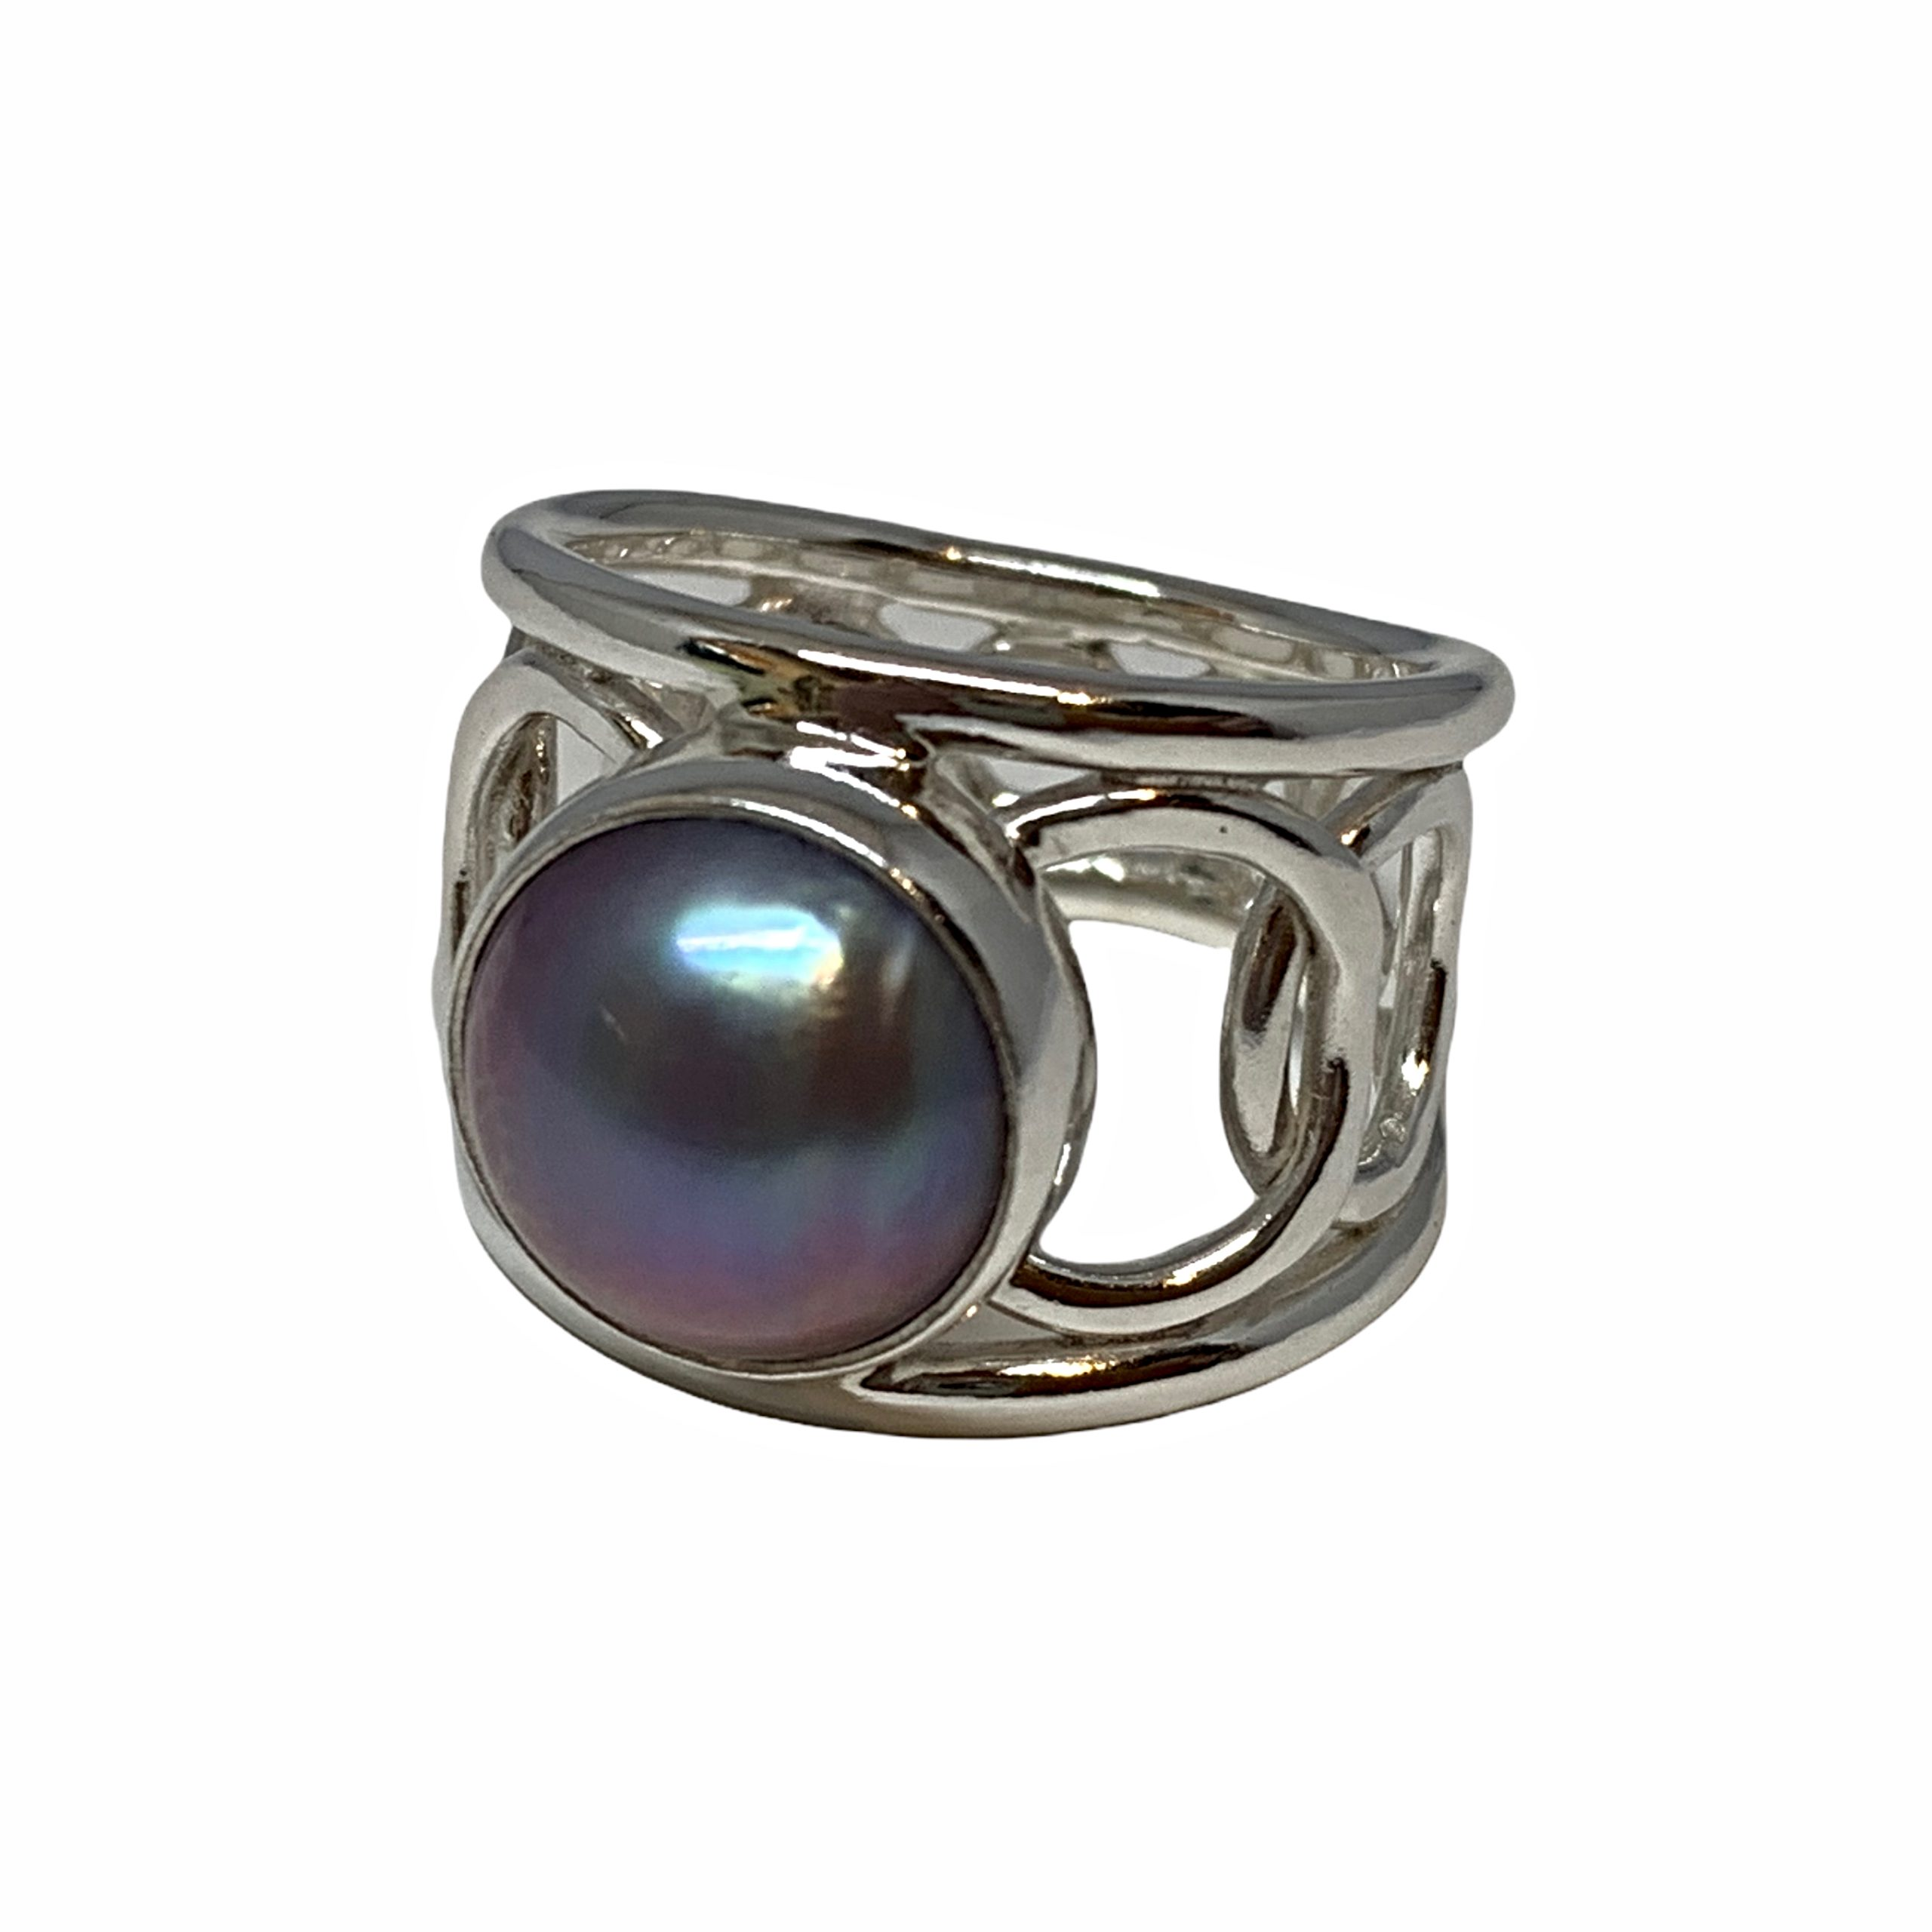 Handmade sterling silver and pink Keshi pearl ring by A&R Jewellery | Effusion Art Gallery + Cast Glass Studio, Invermere BC